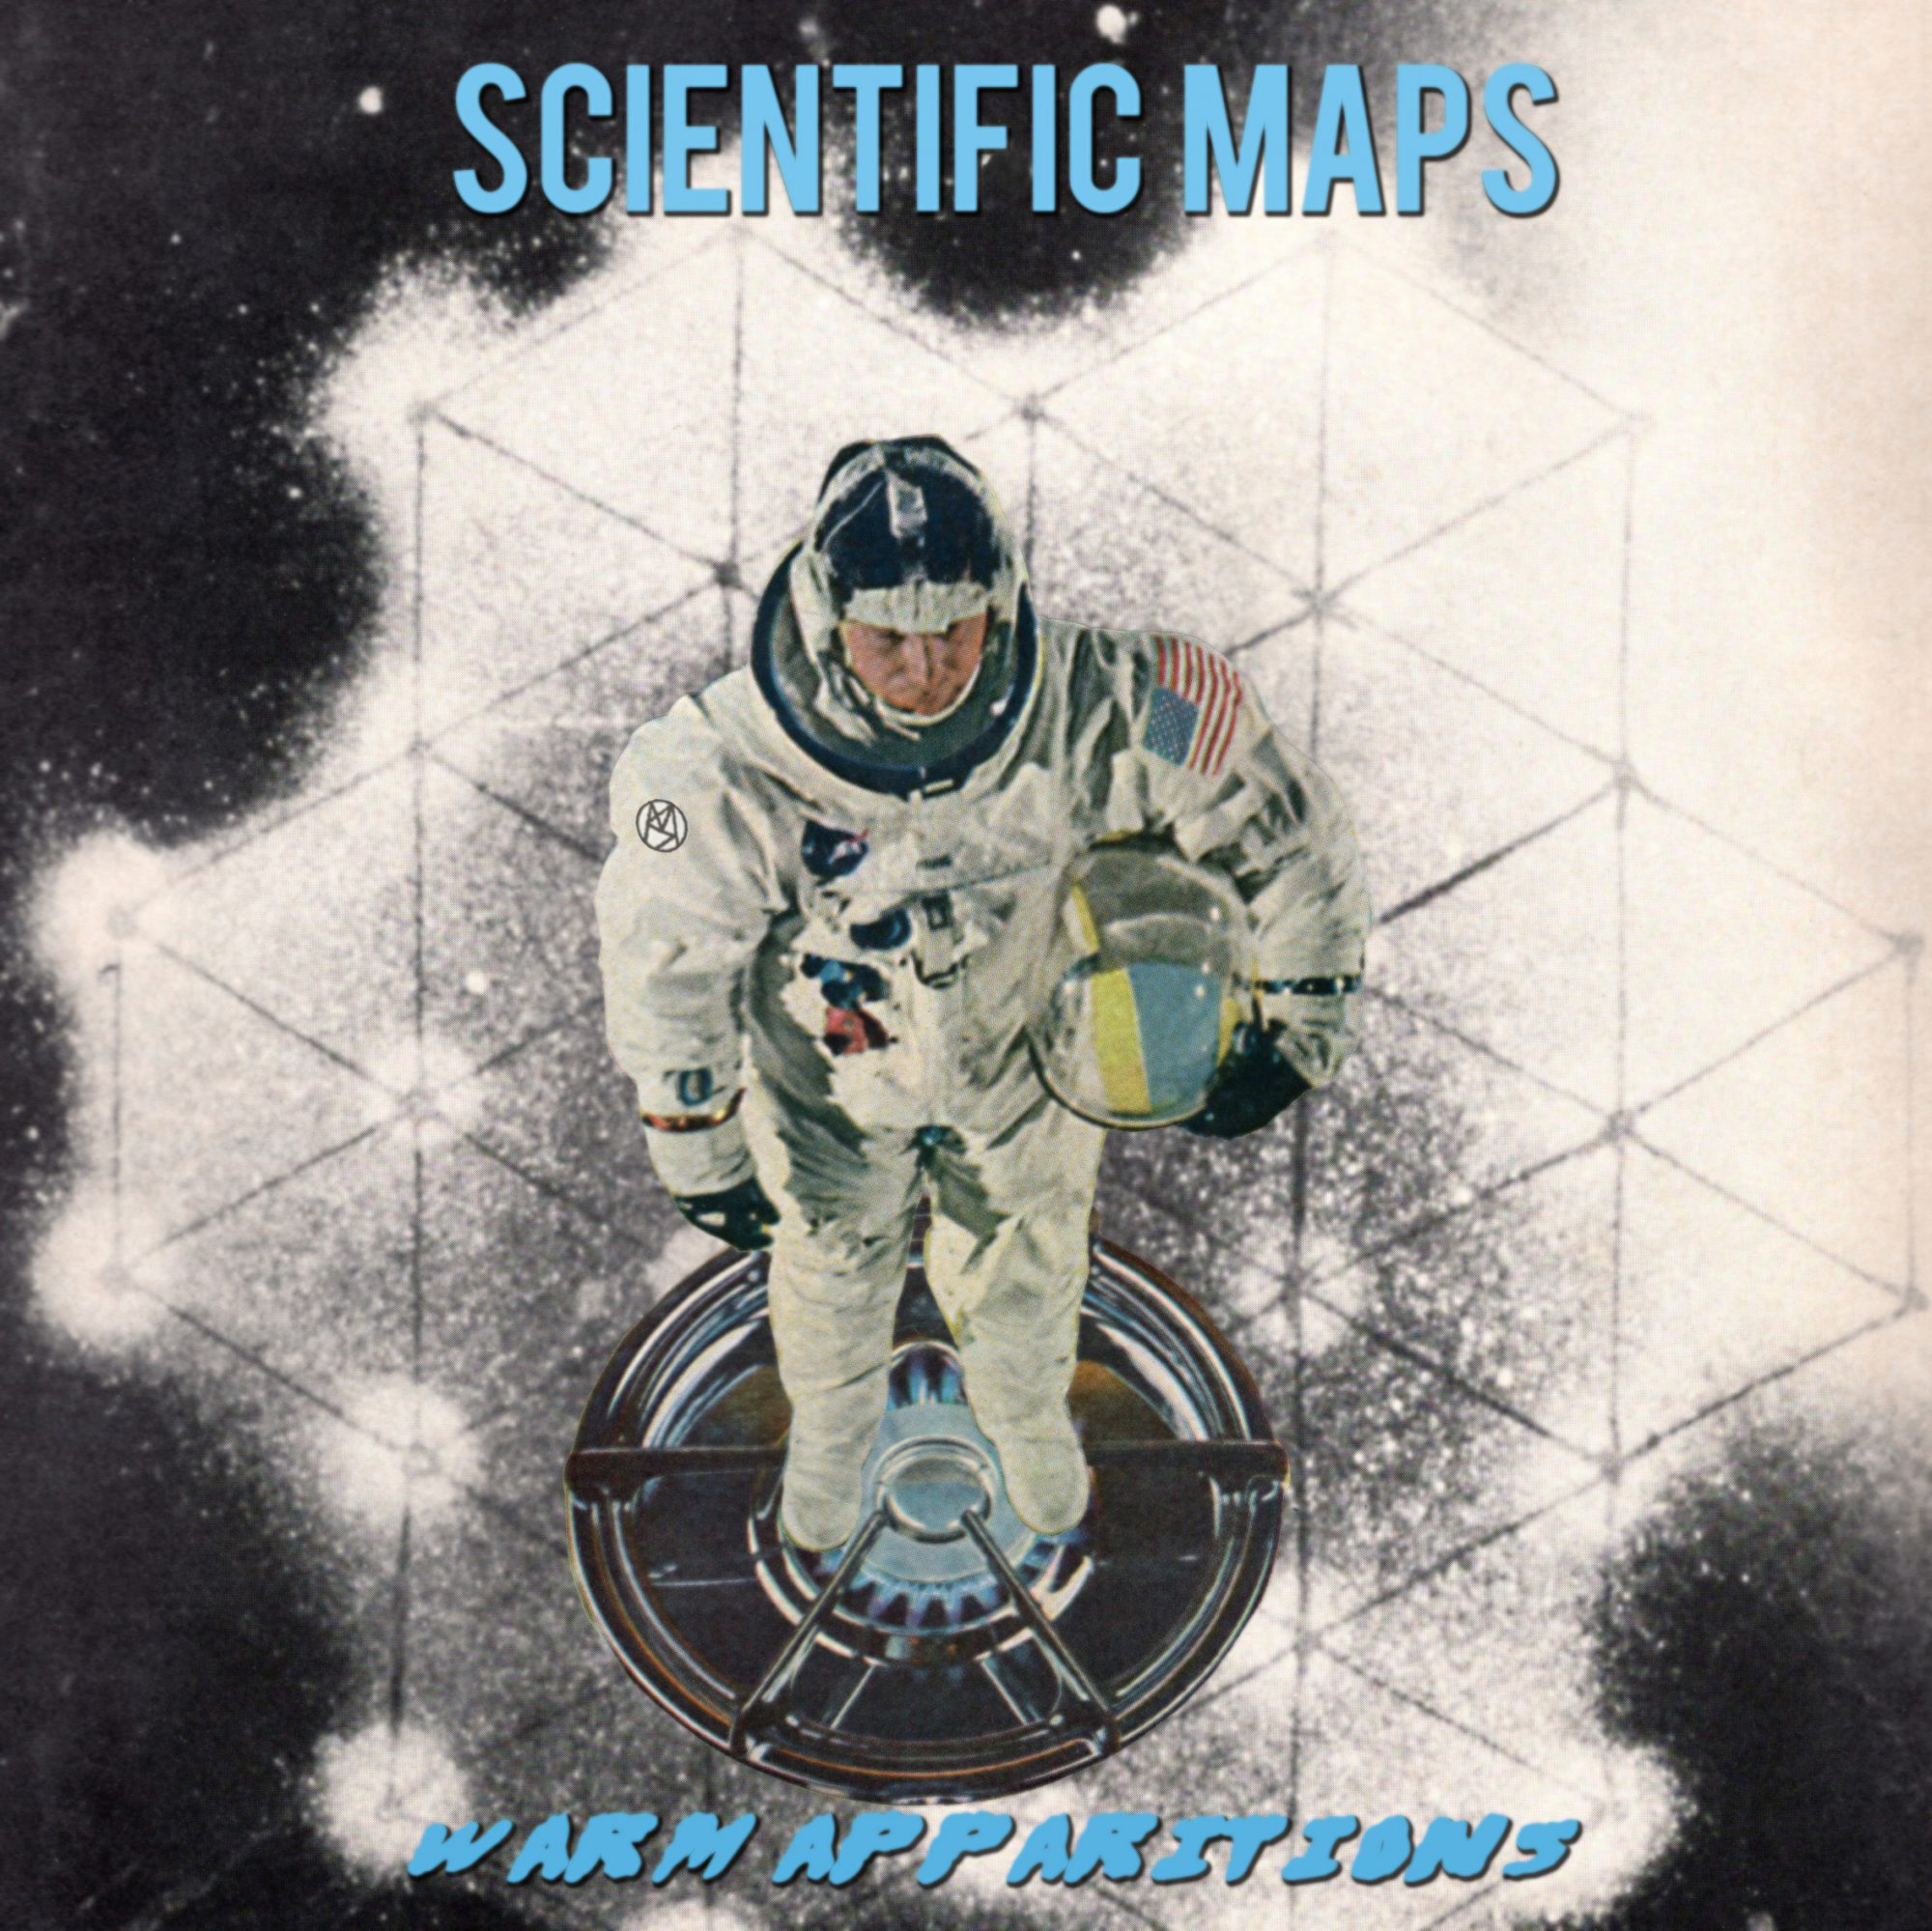 Scientific Maps